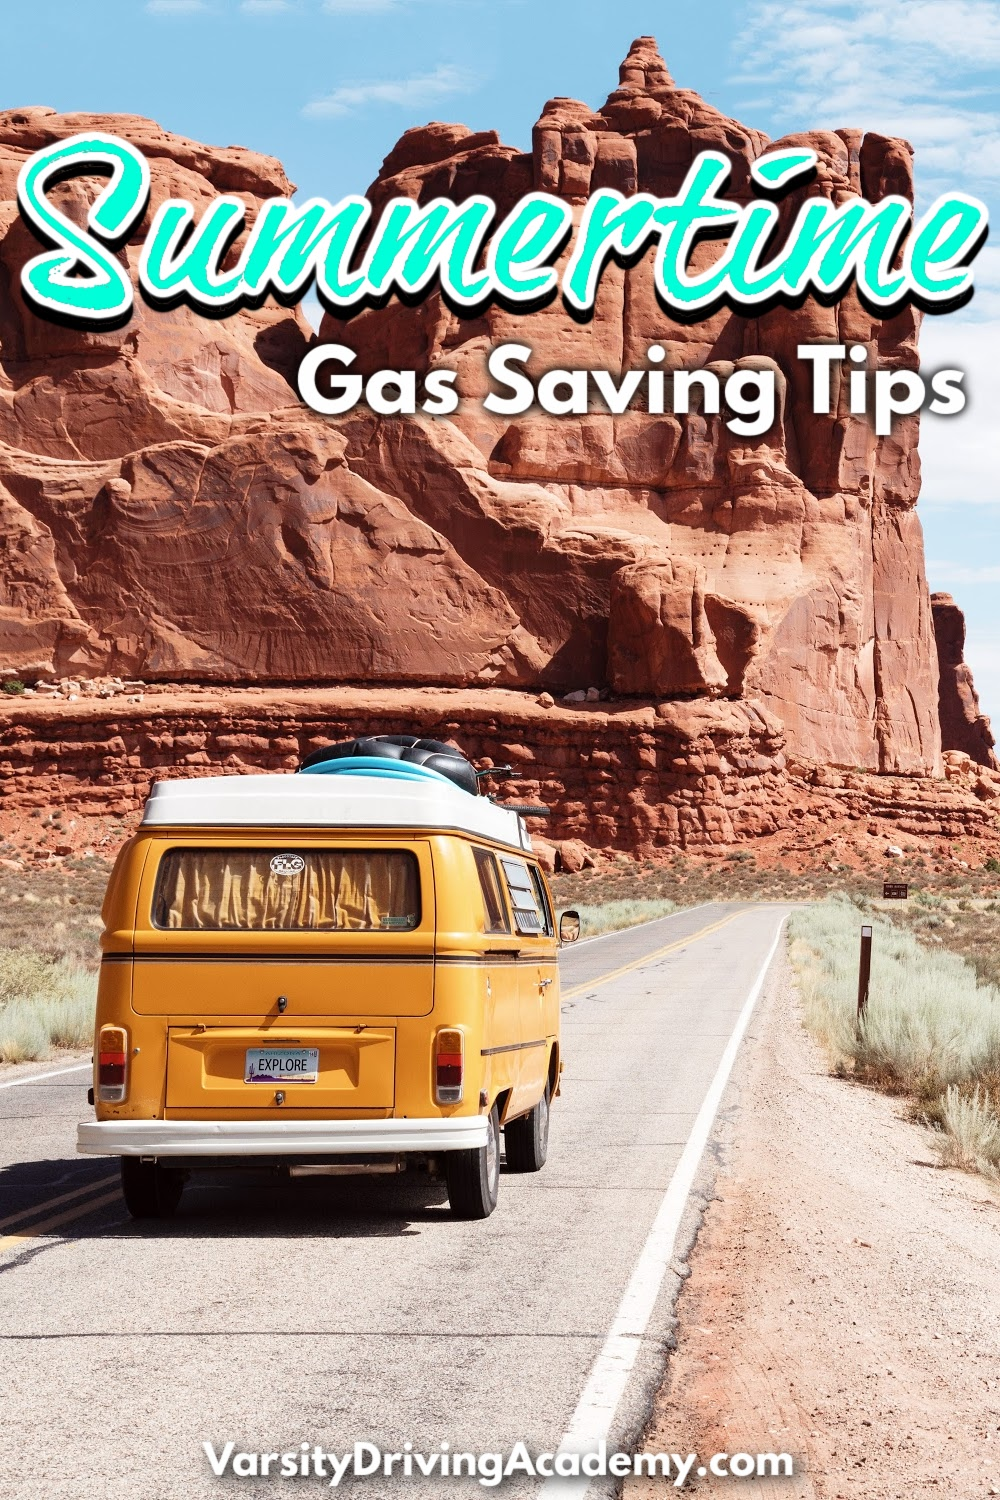 Summertime gas saving tips can help you save money while still enjoying your summer by going out and having fun.